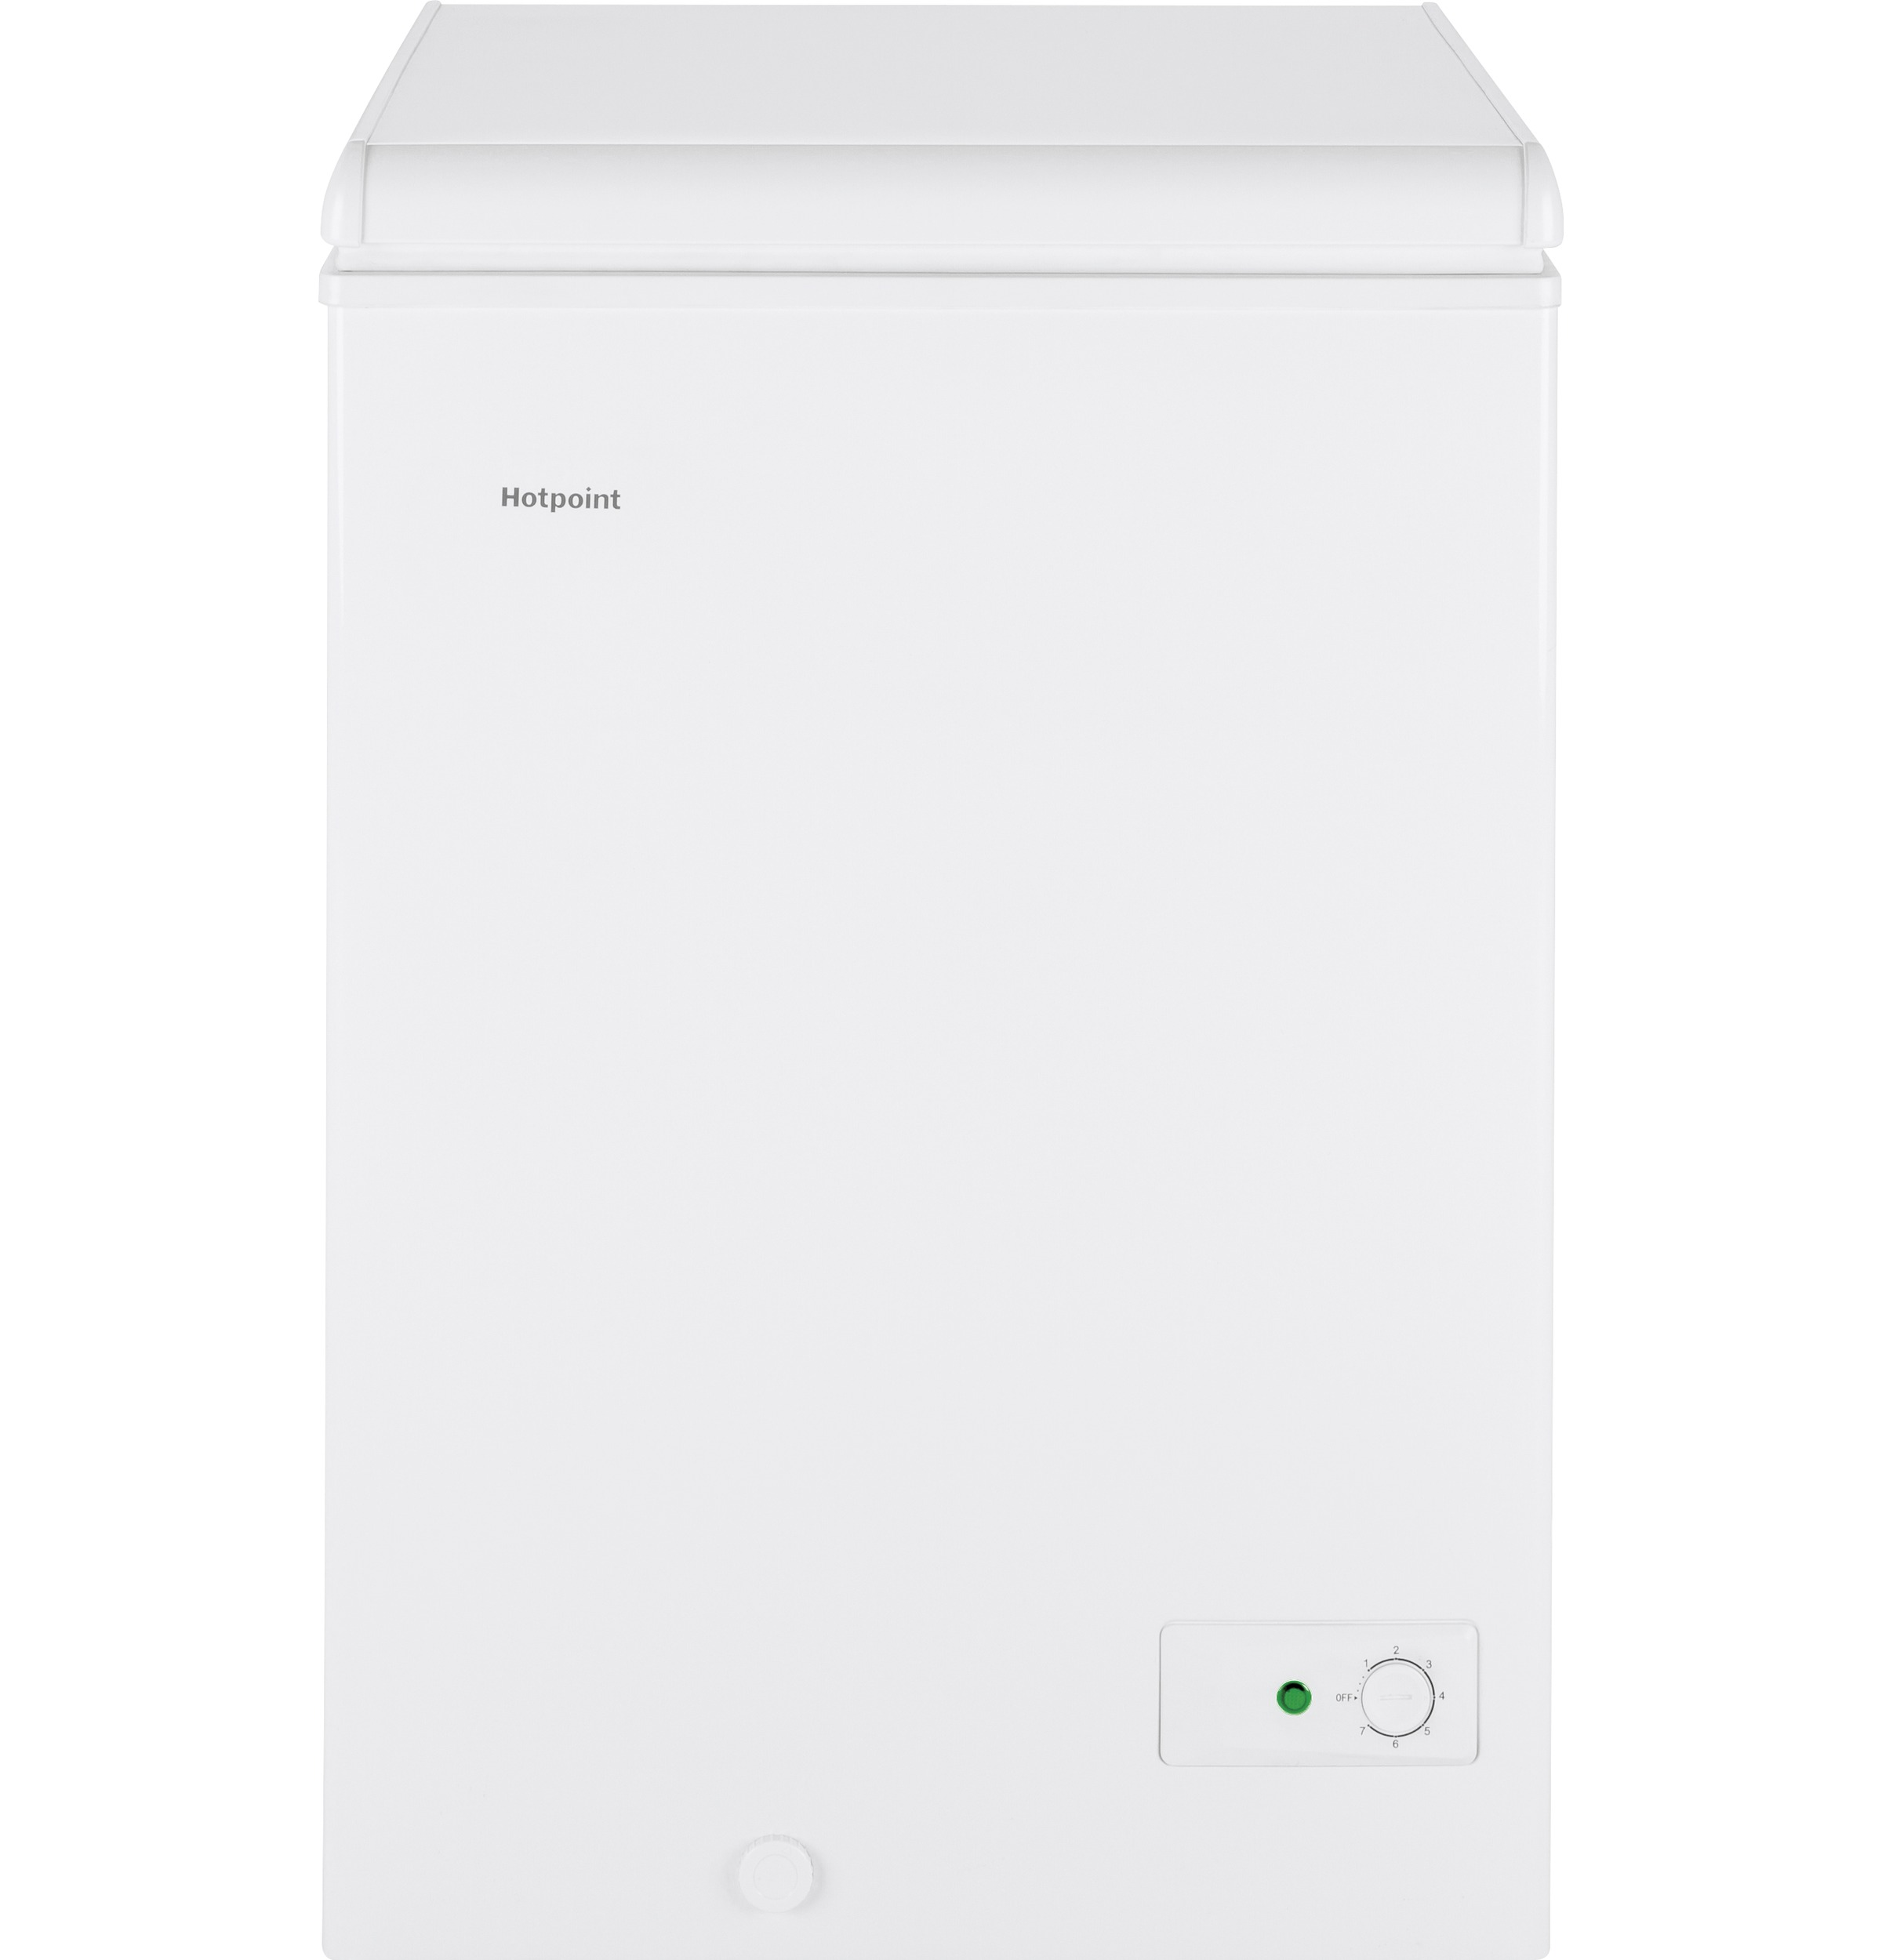 Hotpoint Hotpoint® 3.6 Cu. Ft. Manual Defrost Chest Freezer